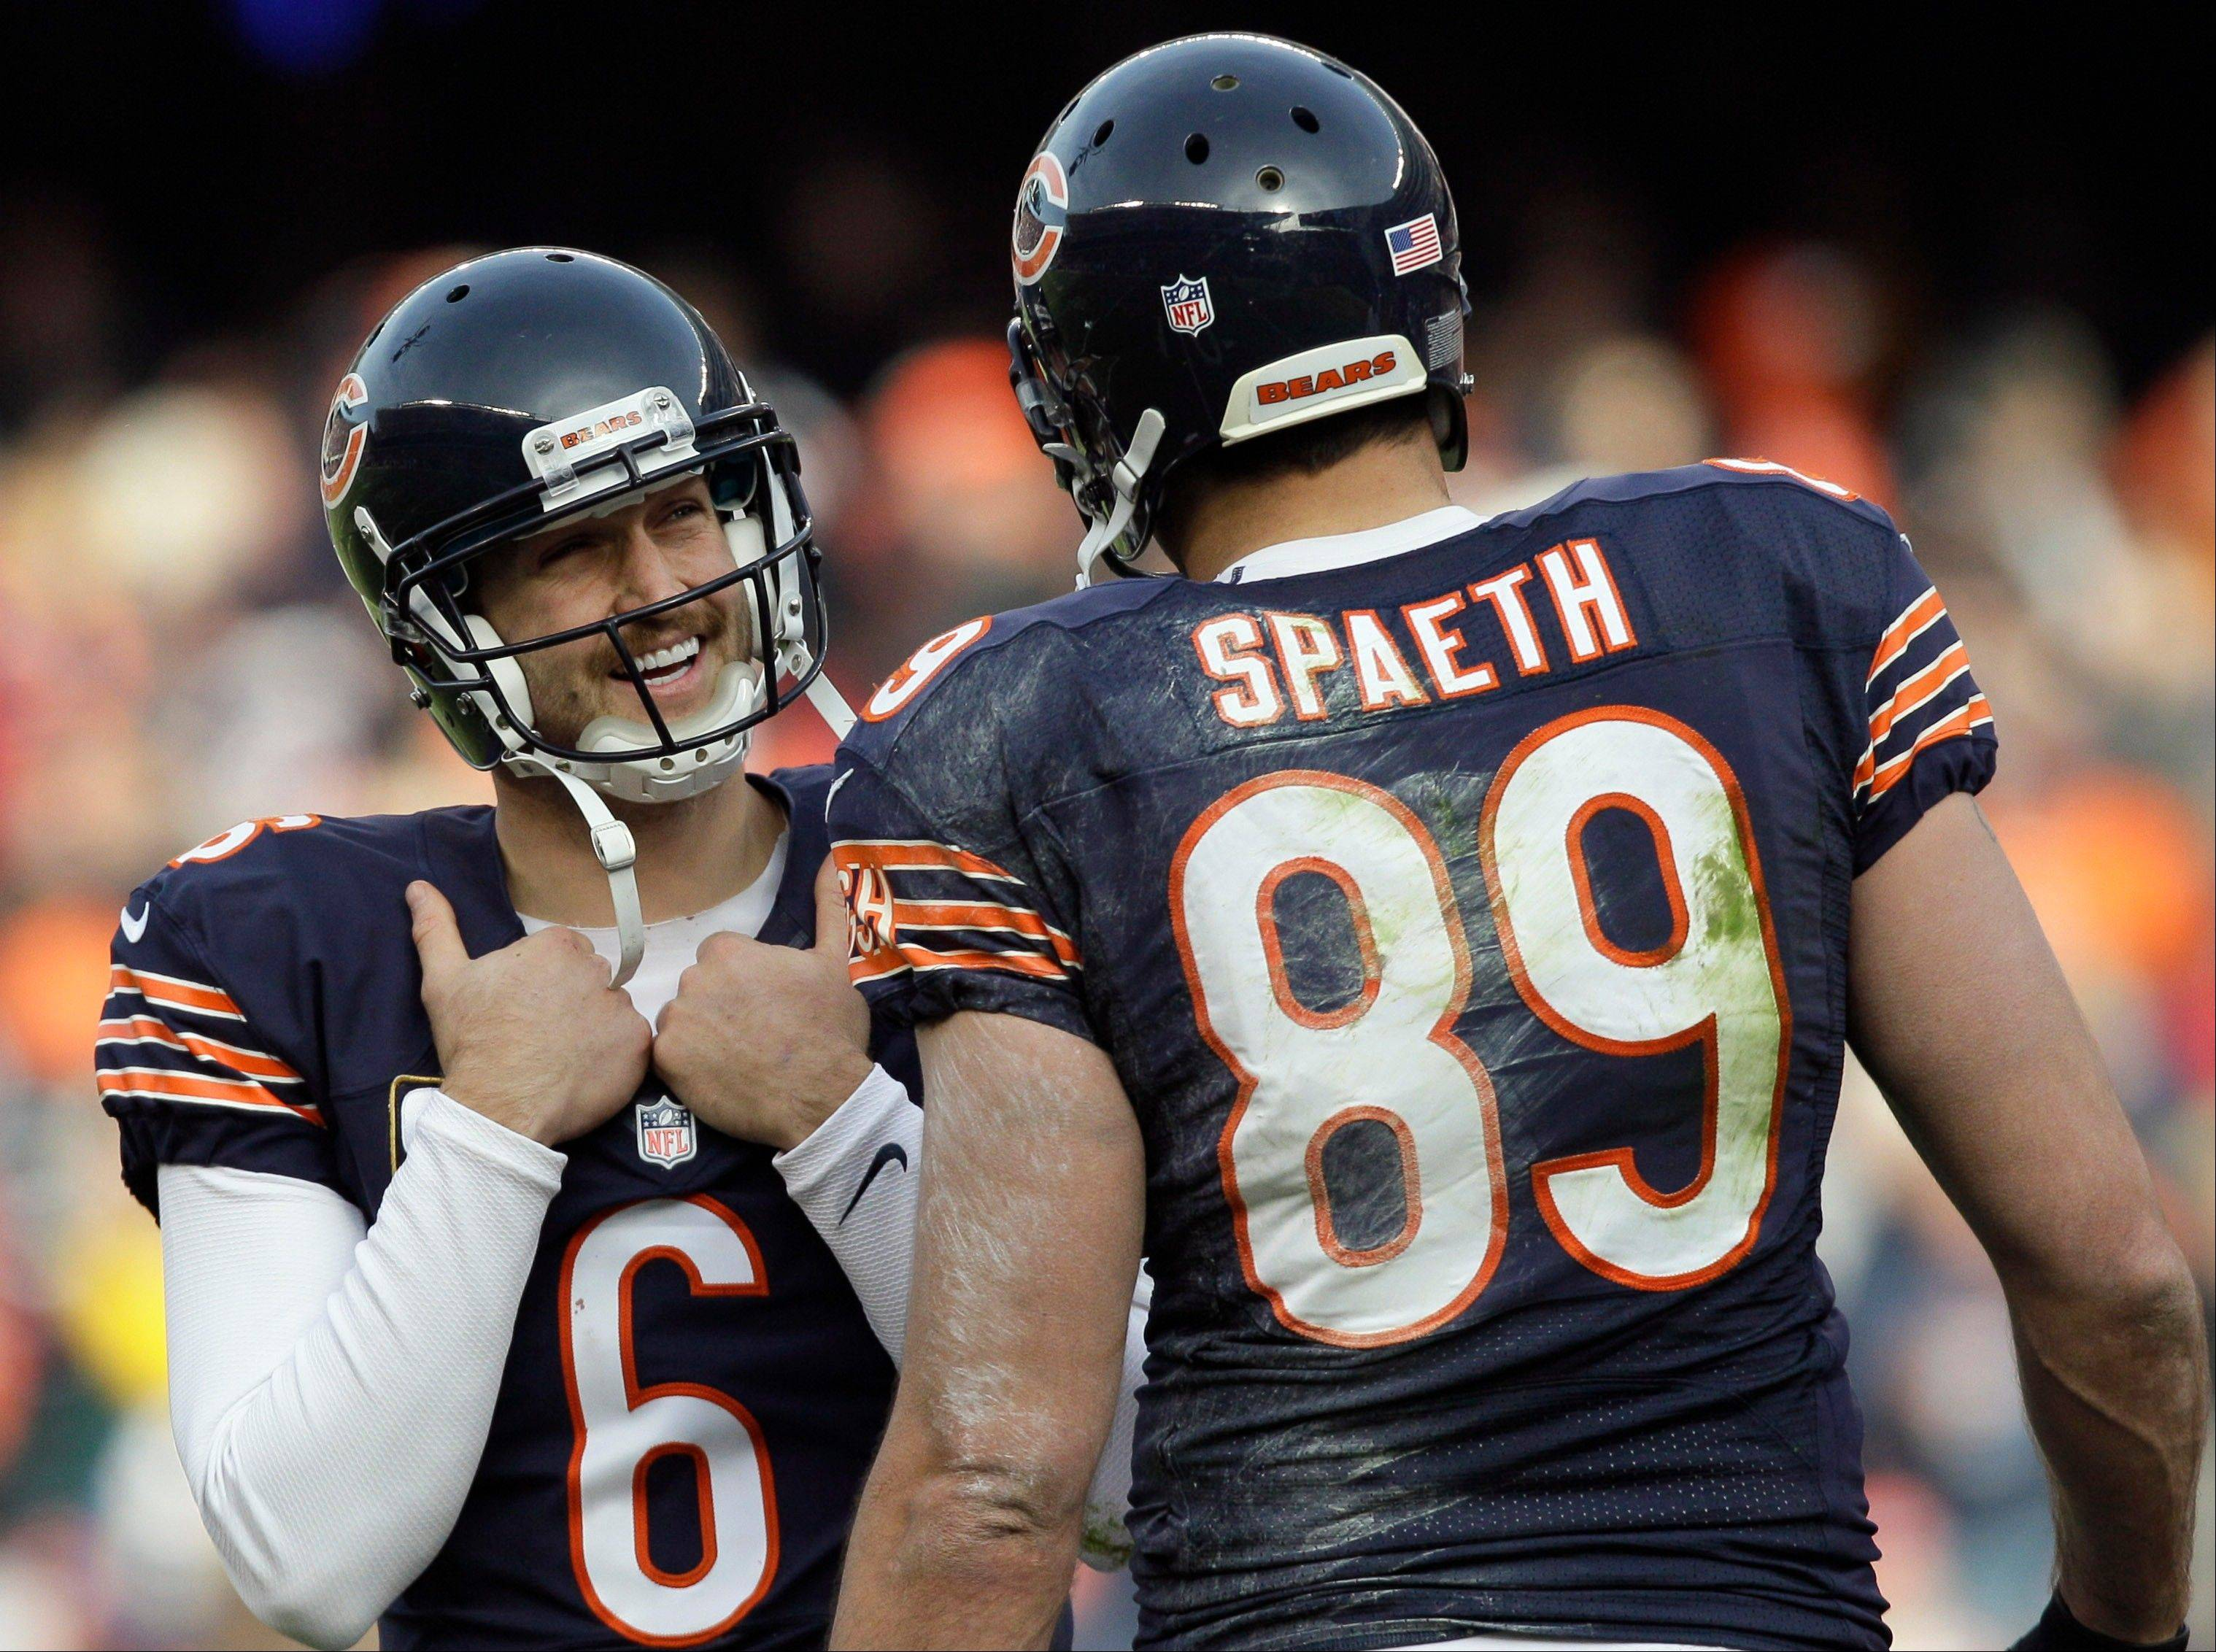 Chicago Bears quarterback Jay Cutler (6) smiles as he talks to Chicago Bears tight end Matt Spaeth (89) during a play review in the first half of an NFL football game against the Minnesota Vikings. After the review, officials ruled that Spaeth had made a touchdown catch.